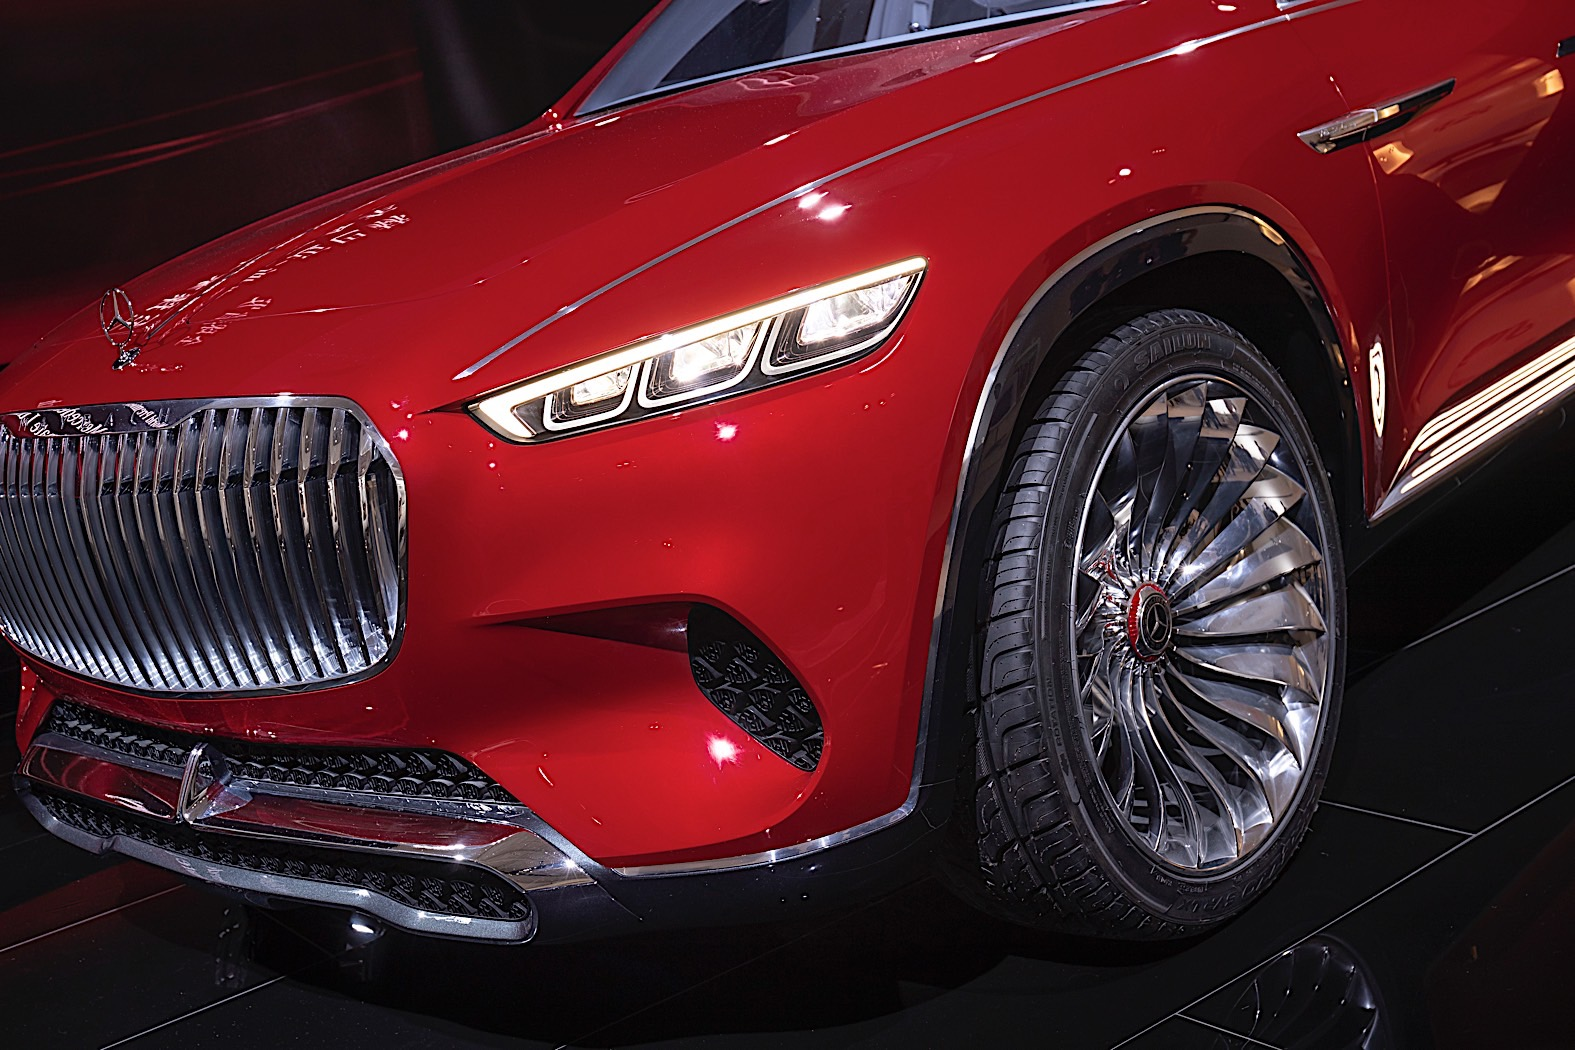 Vision MercedesMaybach Ultimate Luxury Stuns At Auto China - Luxury car show 2018